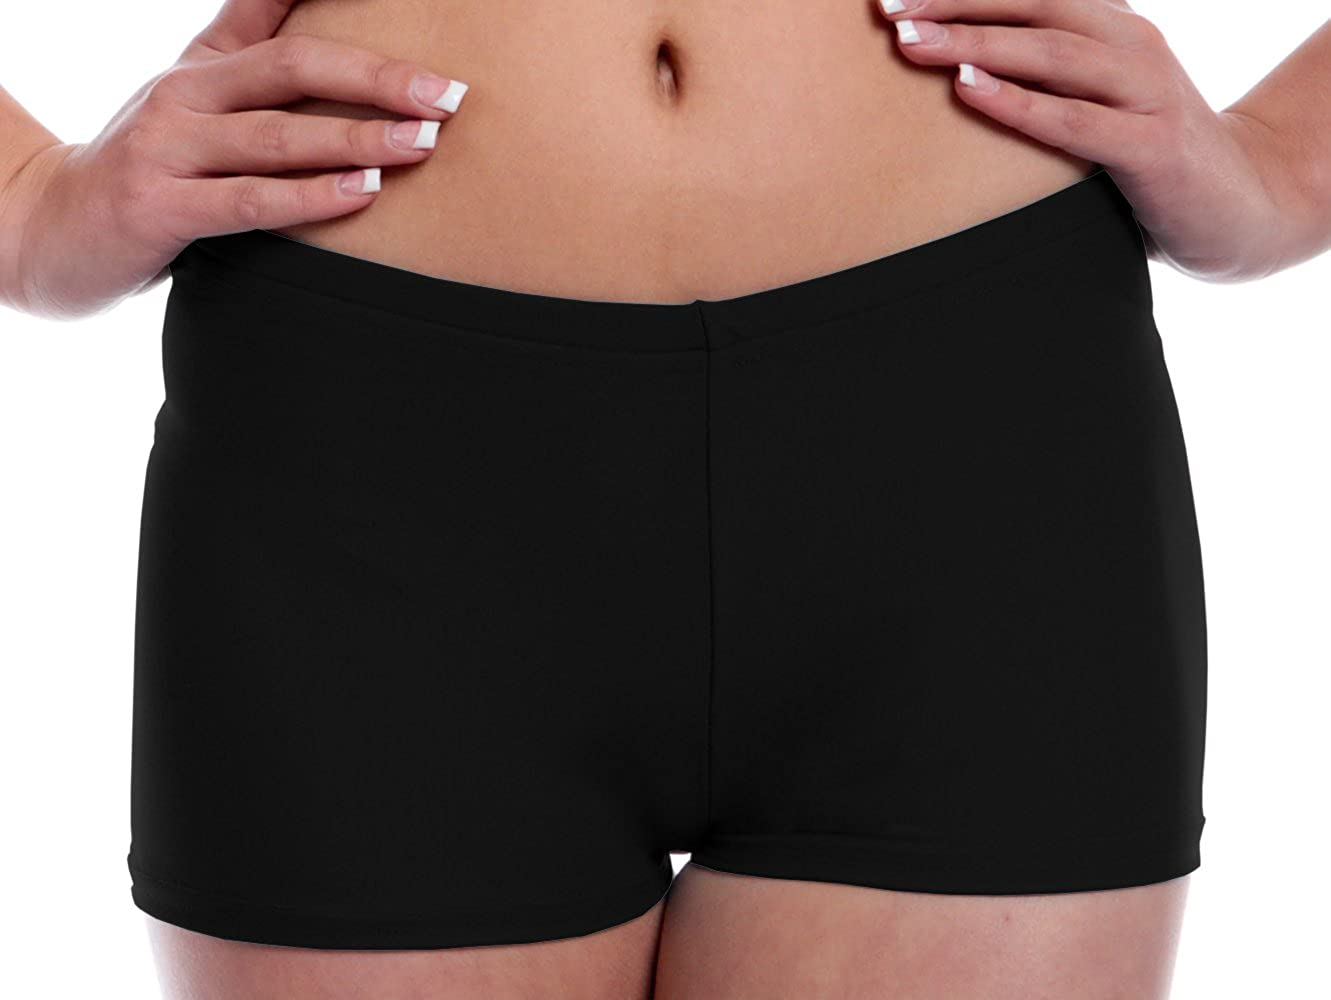 B Dancewear Girls Booty Shorts with Stretch for Dance, Yoga, Working Out, Exercise and Running Child and Kid Sizes